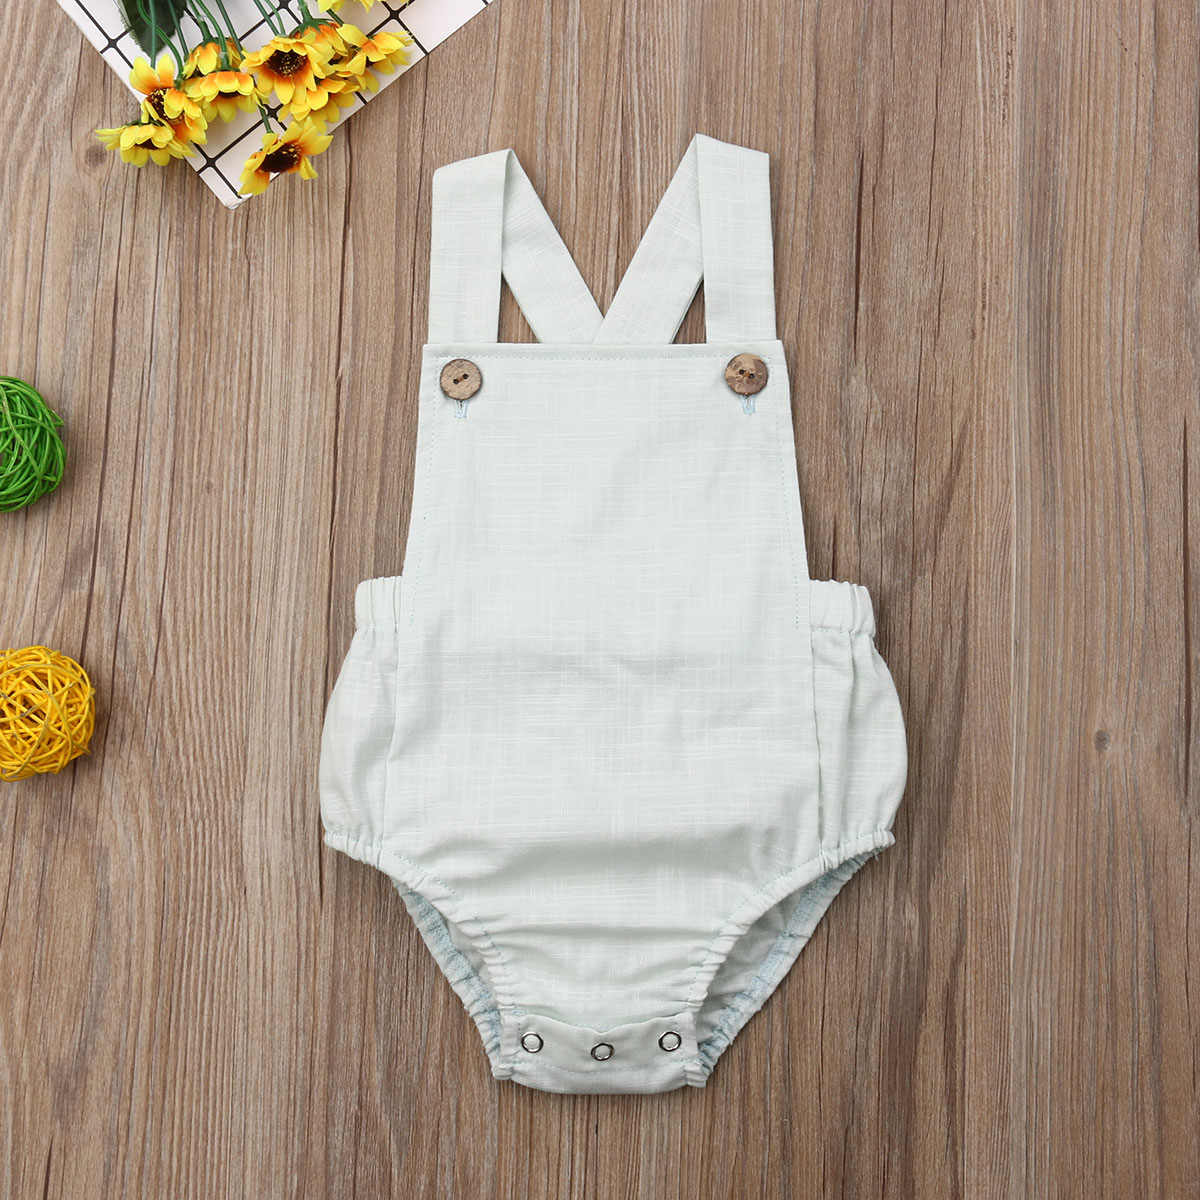 Newborn Baby Infant Toddler Girl Solid Ruffles Bodysuit Button Backless Jumpsuit Baby Casual Clothing One-piece Outfits 0-3T